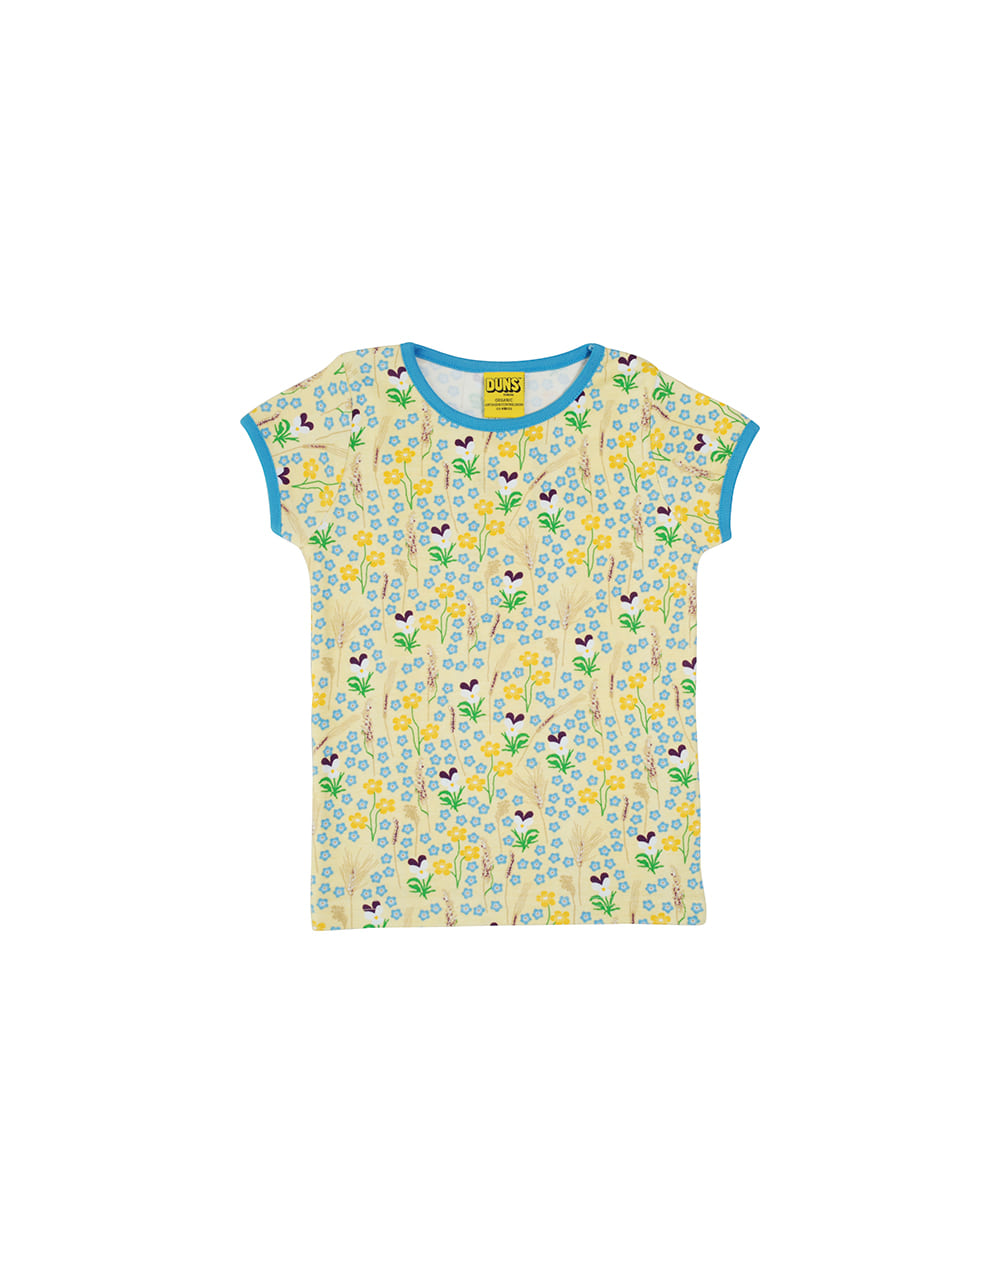 DUNS SWEDEN  SS TOP  Meadow Yellow